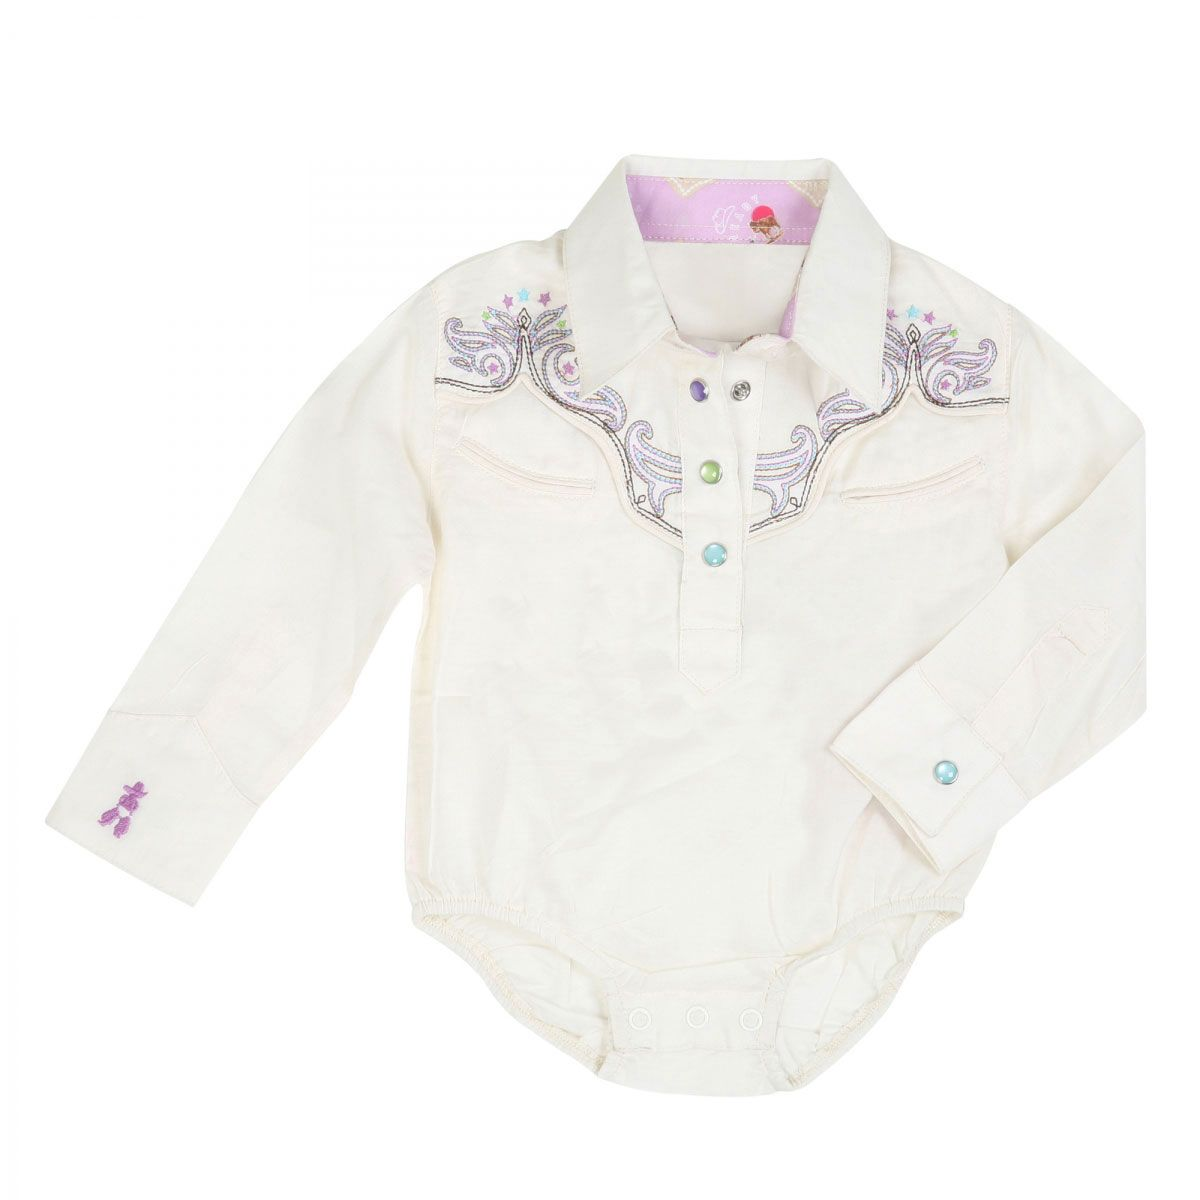 59de4f9ee Wrangler All Around Baby Embroidered White Long Sleeve Onesies|Baby/Toddler Western  Clothing